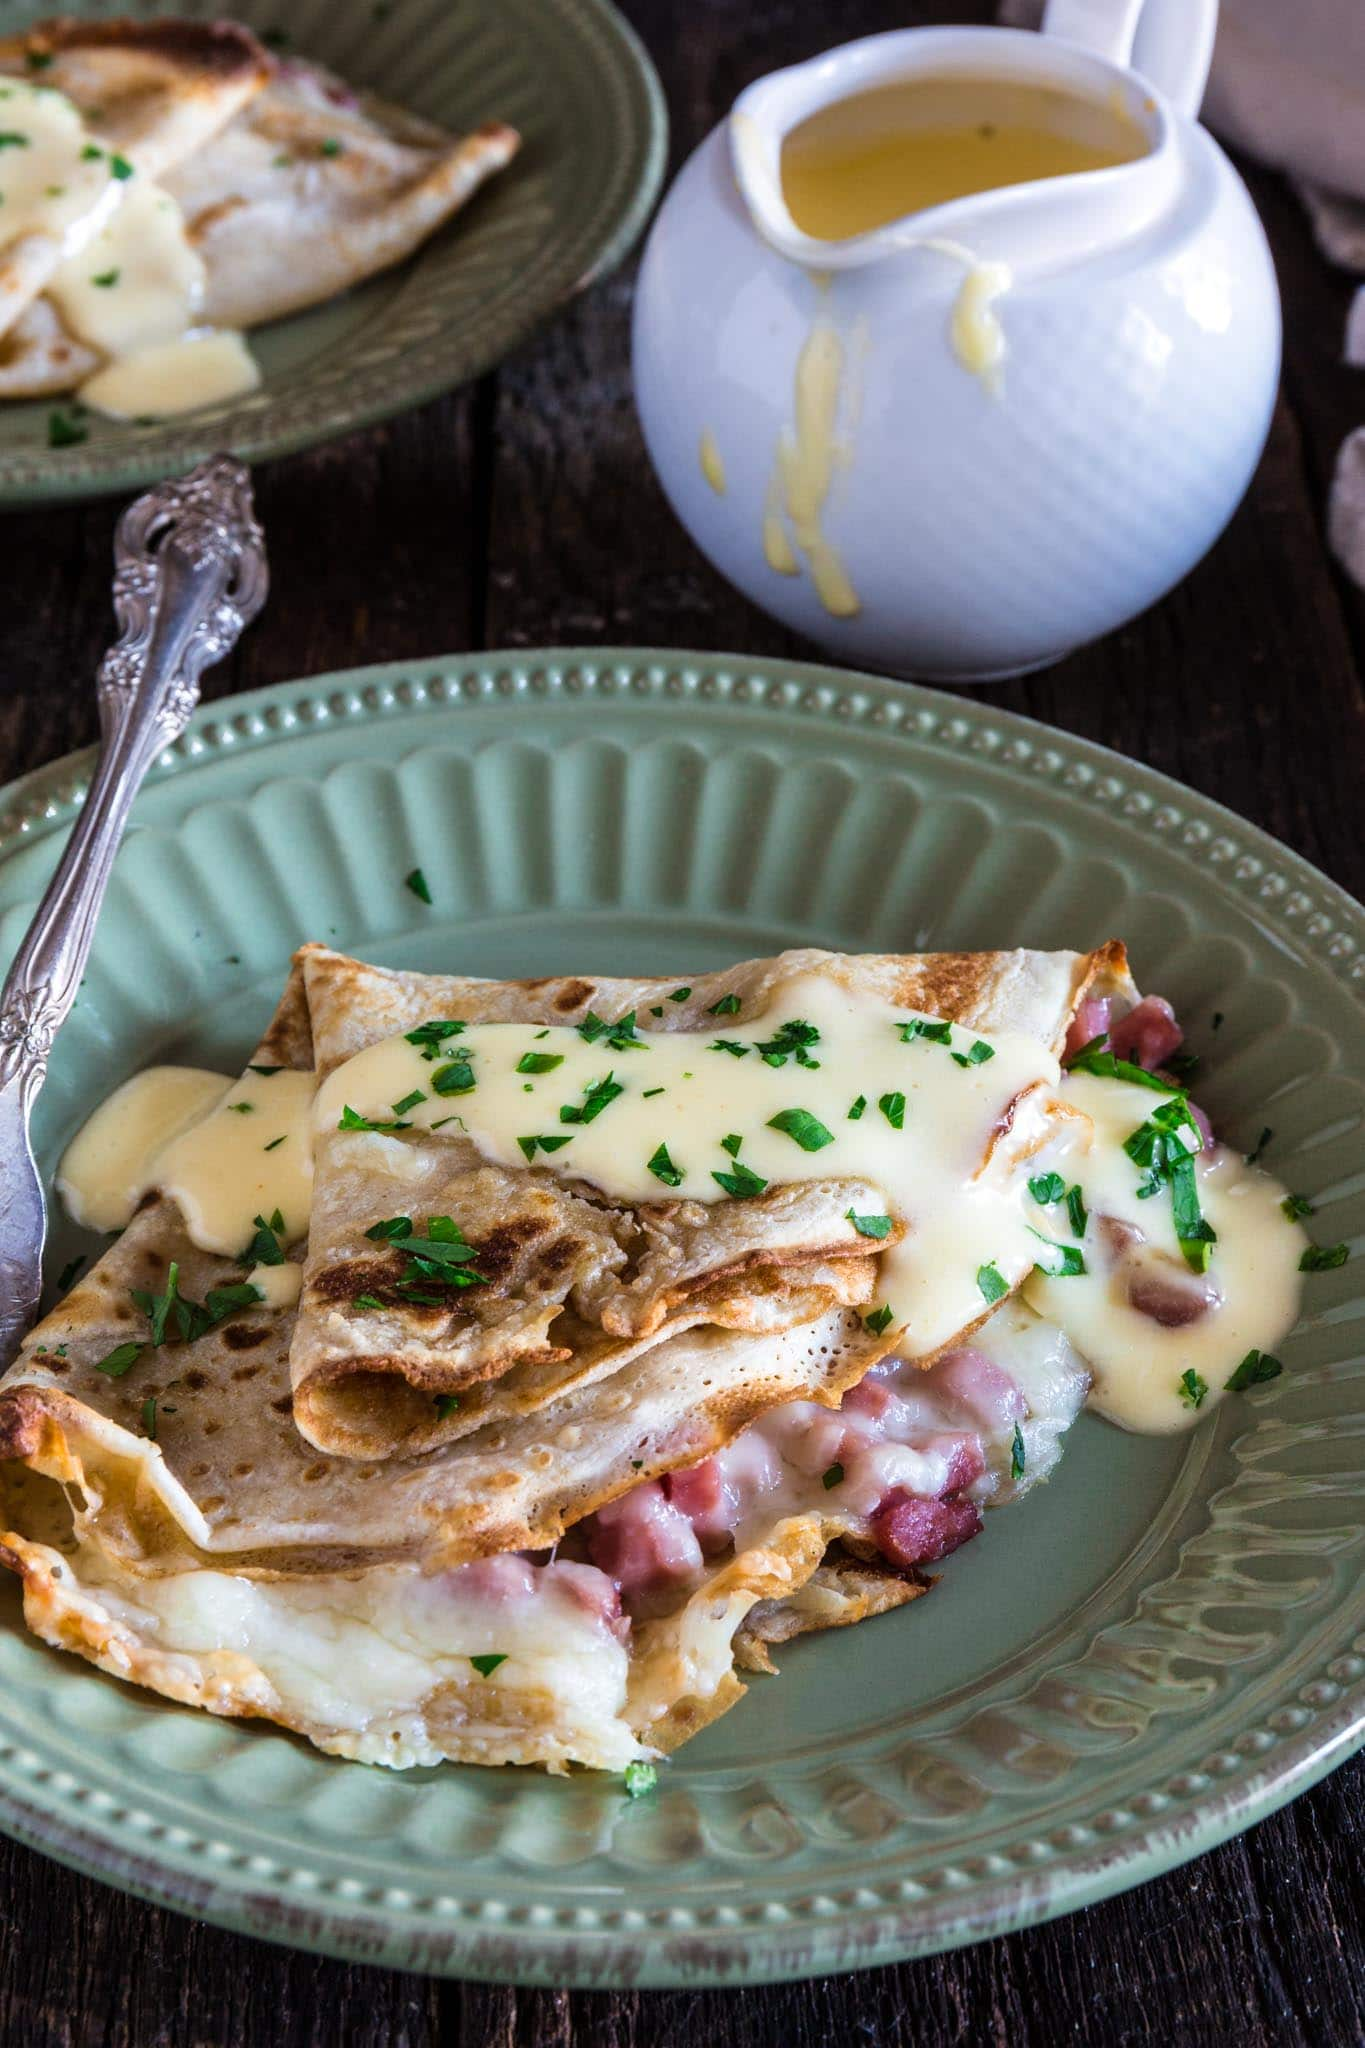 Ham and Cheese Savory Crepes with Hollandaise Sauce | www.oliviascuisine.com | These Ham and Cheese Savory Crepes are beyond fantastic, easy to make and will take breakfast (or brunch) to a whole new level. #AD